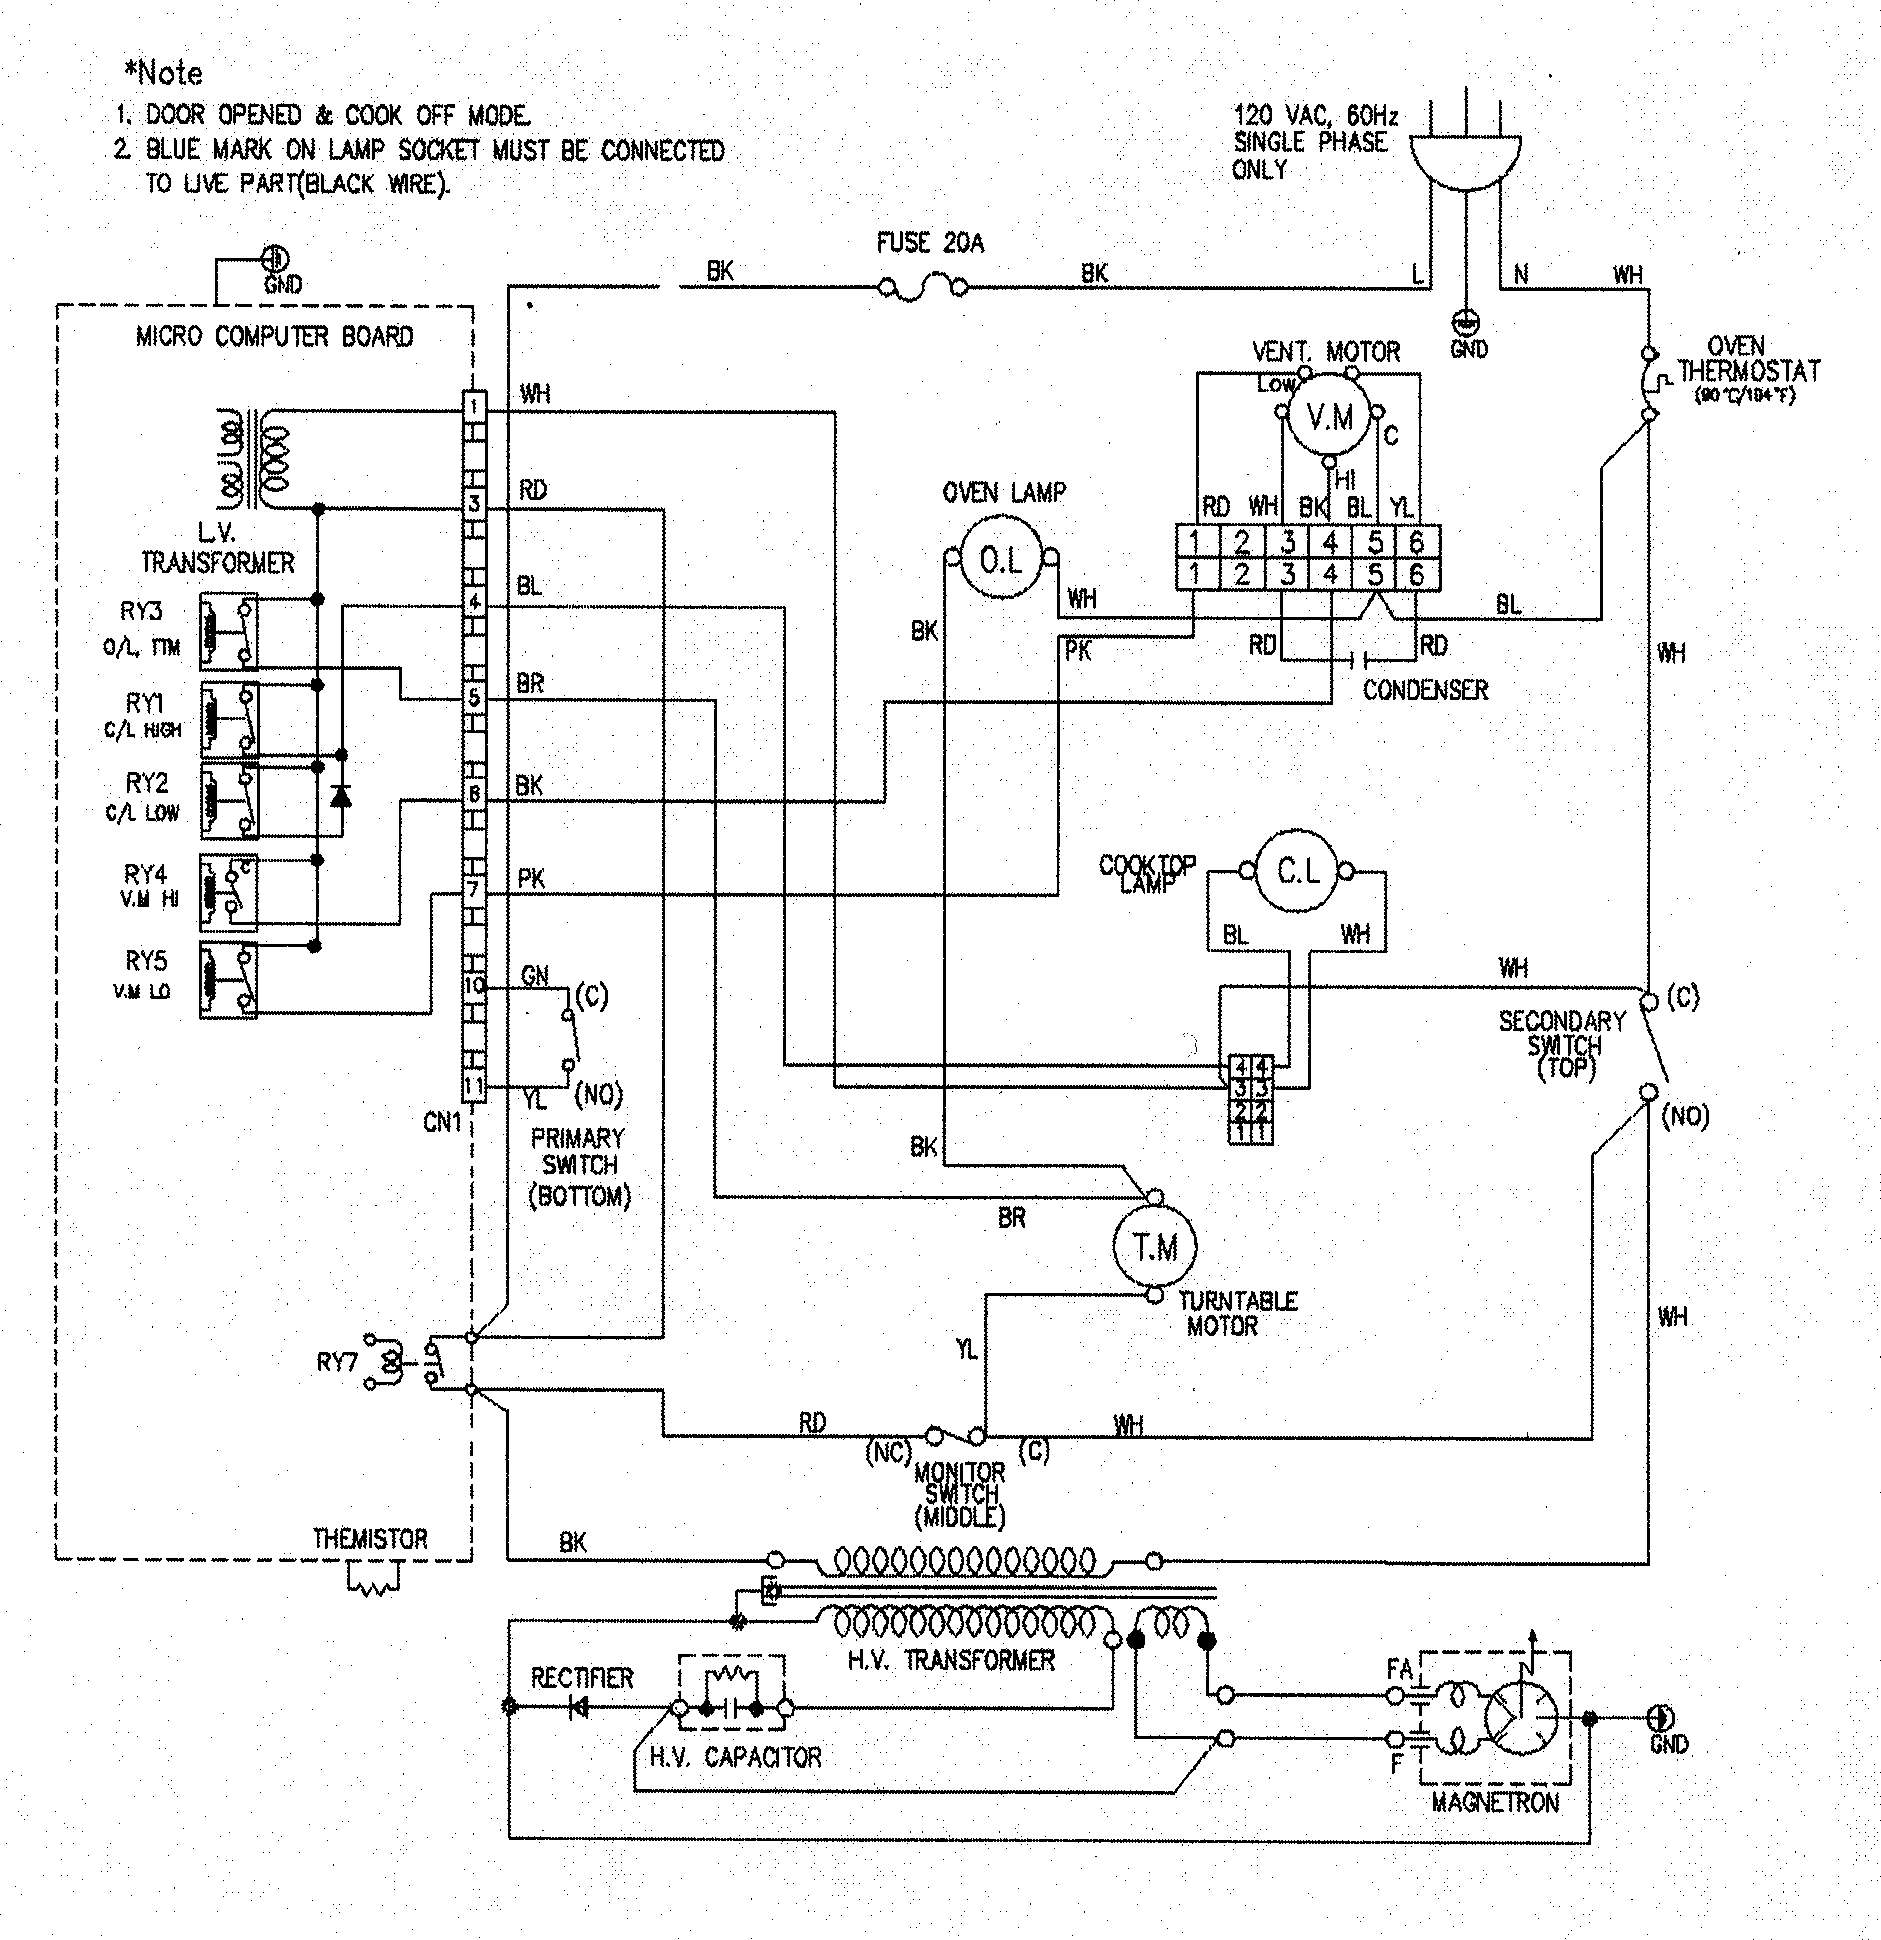 medium resolution of microwave oven wiring diagram wiring diagram show for lg microwave oven wiring diagram